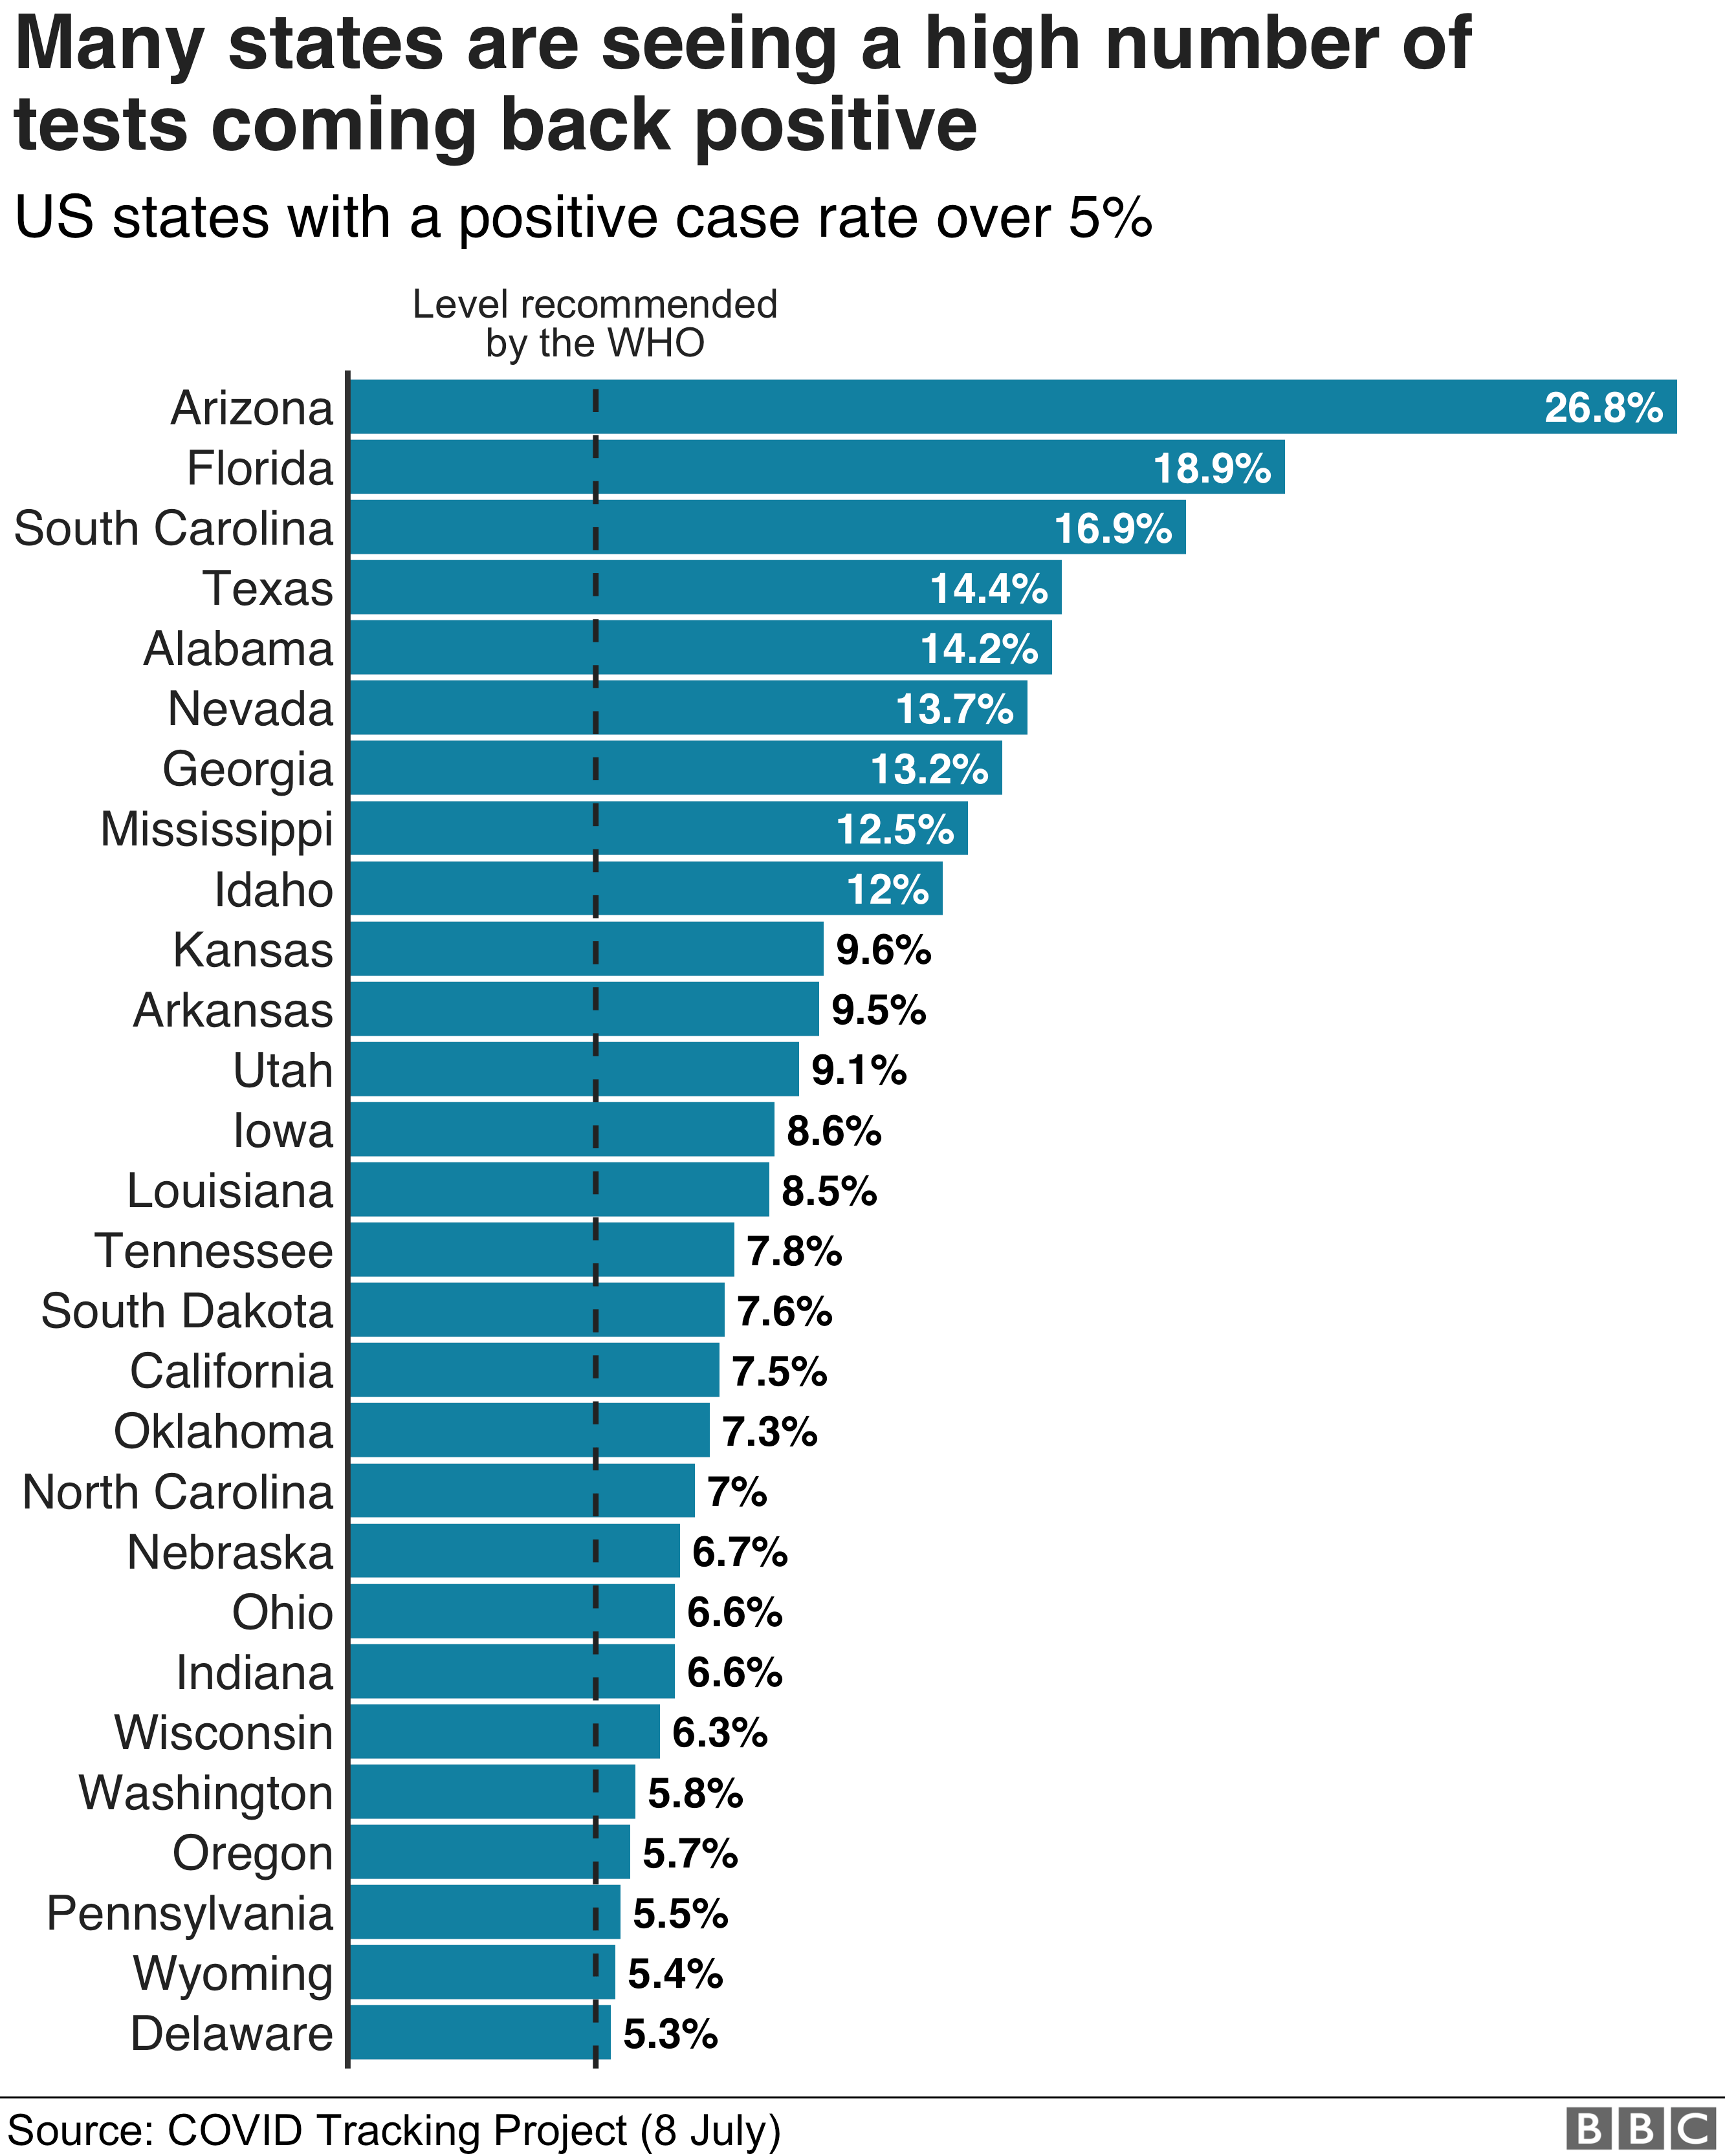 Chart showing the US states that have a positive case rate over 5%